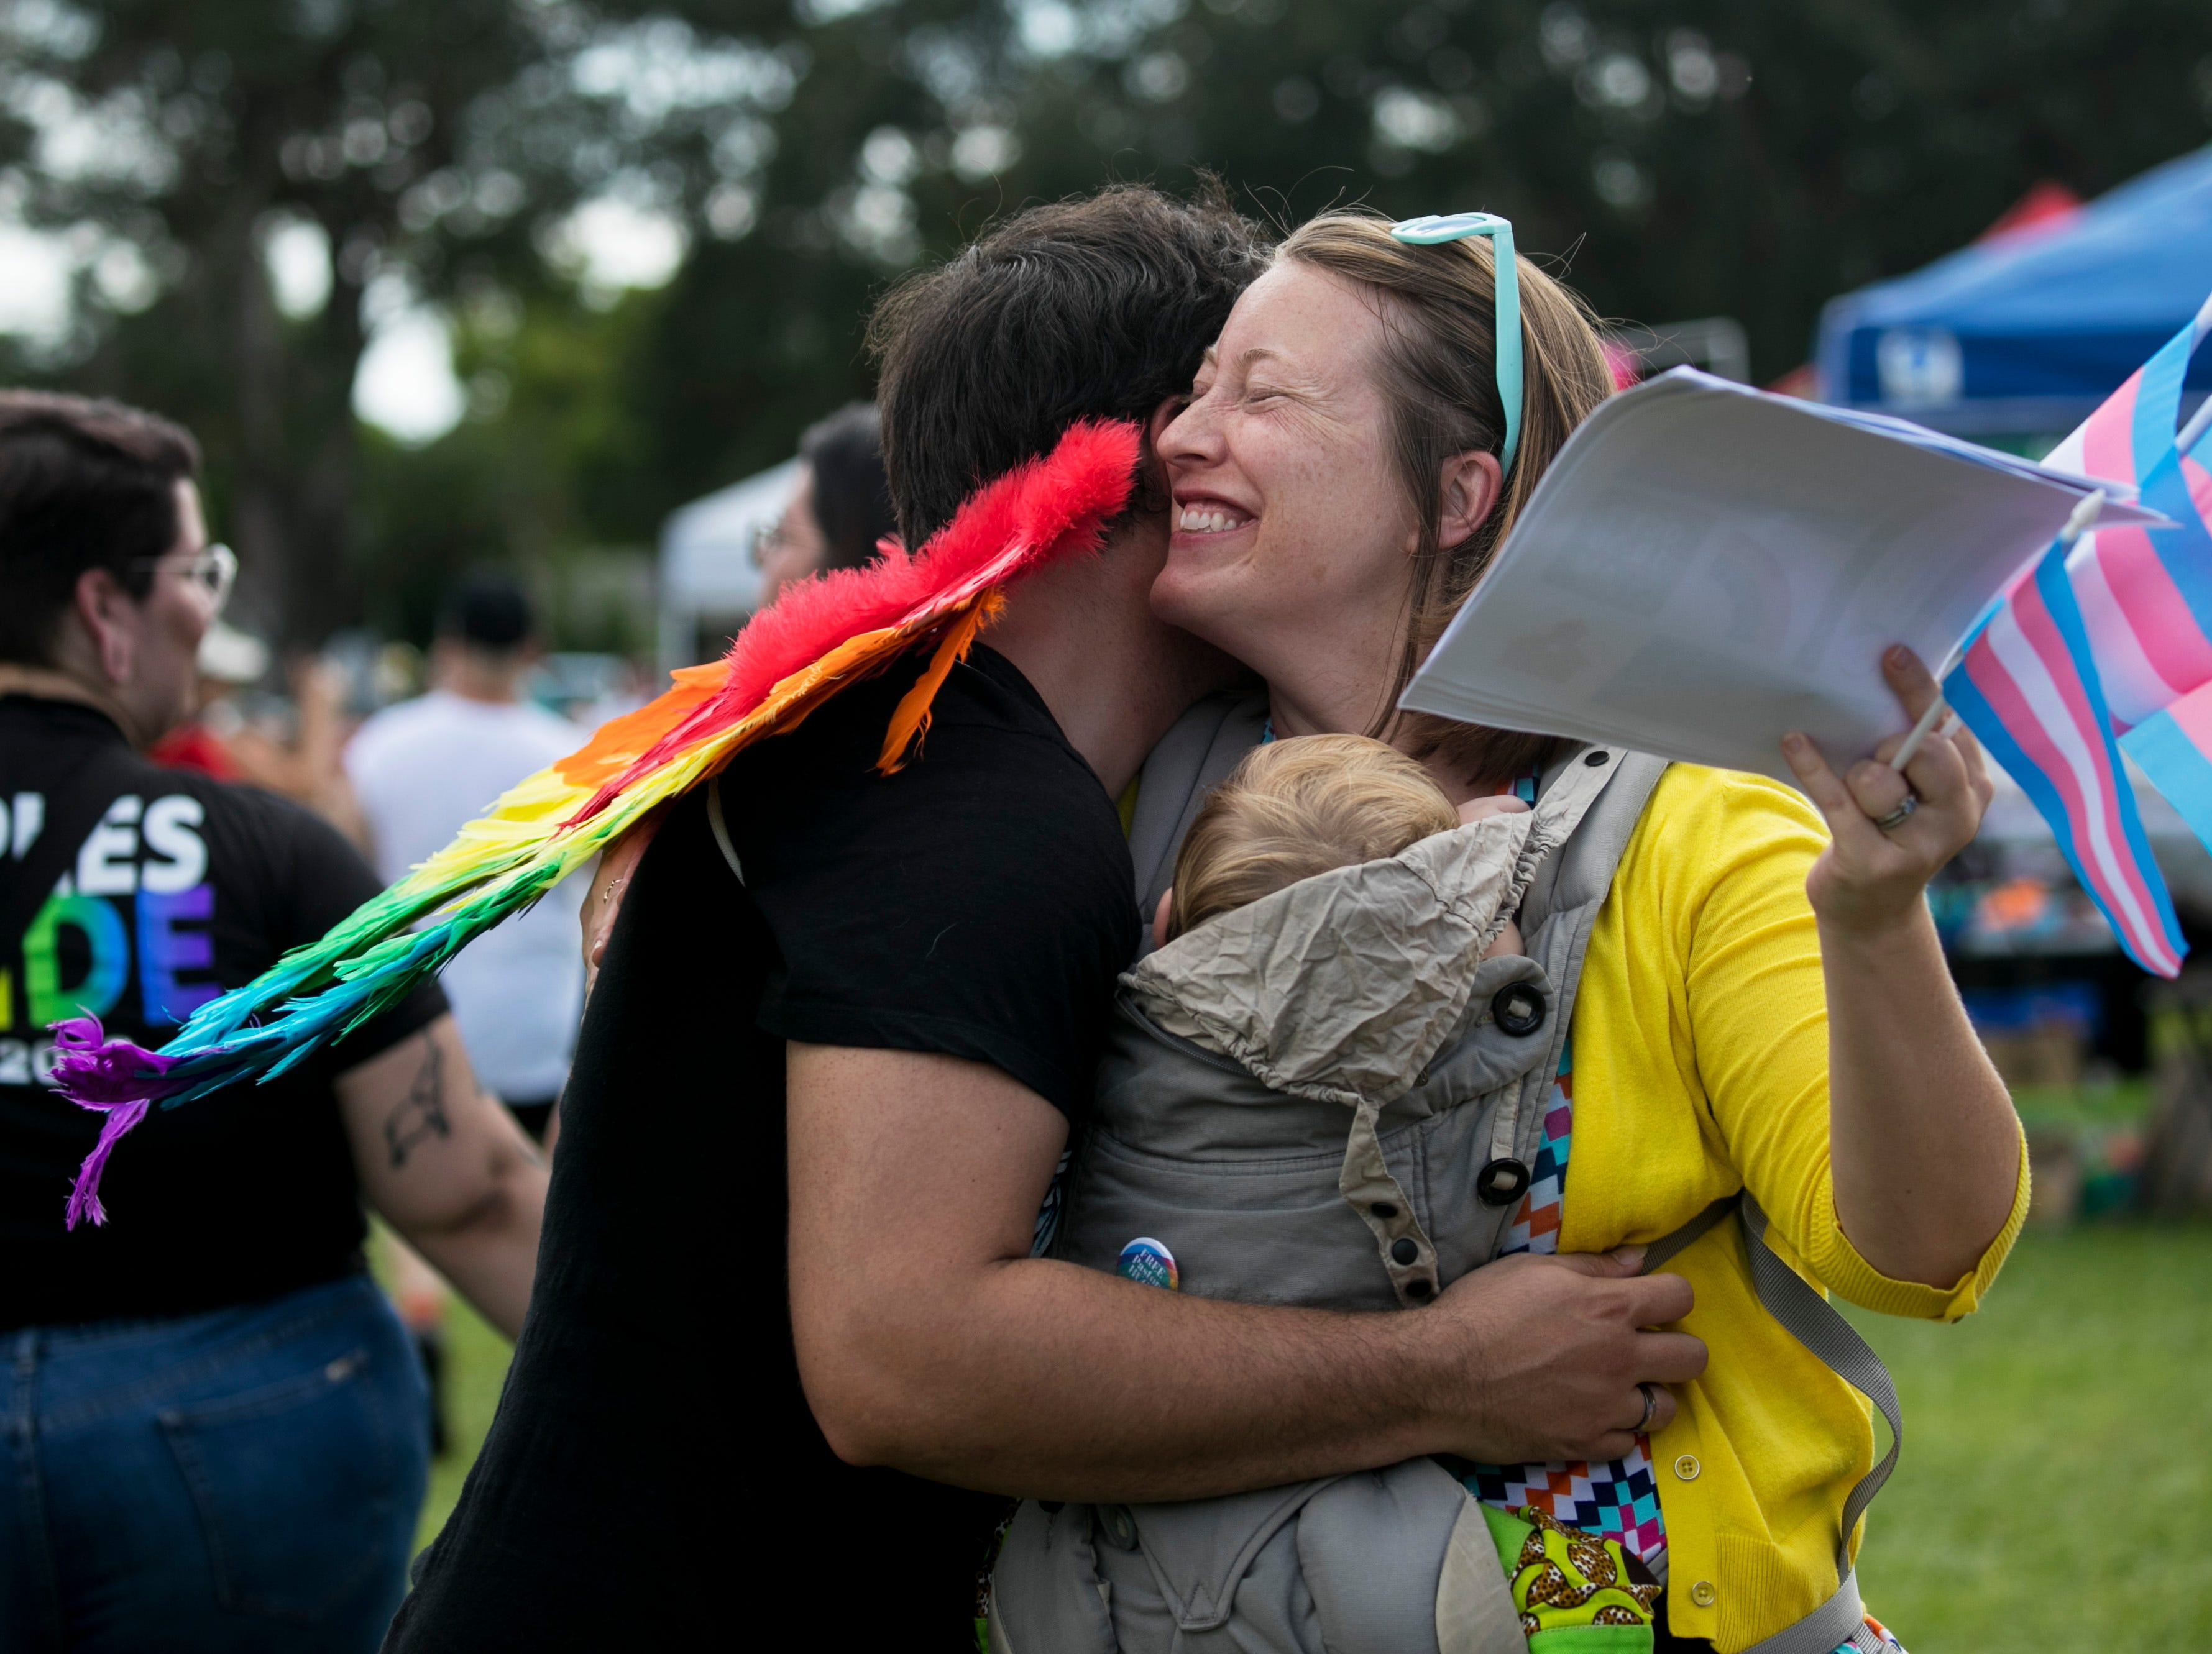 """Rev. Allison Farnum of the Unitarian Universalist Church of Fort Myers gives one of many """"mom hugs"""" at SWFL Pride on Saturday, October 6, 2018, at the Alliance for the Arts in Fort Myers. A group of moms, dads, grandmas, grandpas and sisters came together at the event to give out free hugs to everyone who needed to feel loved."""